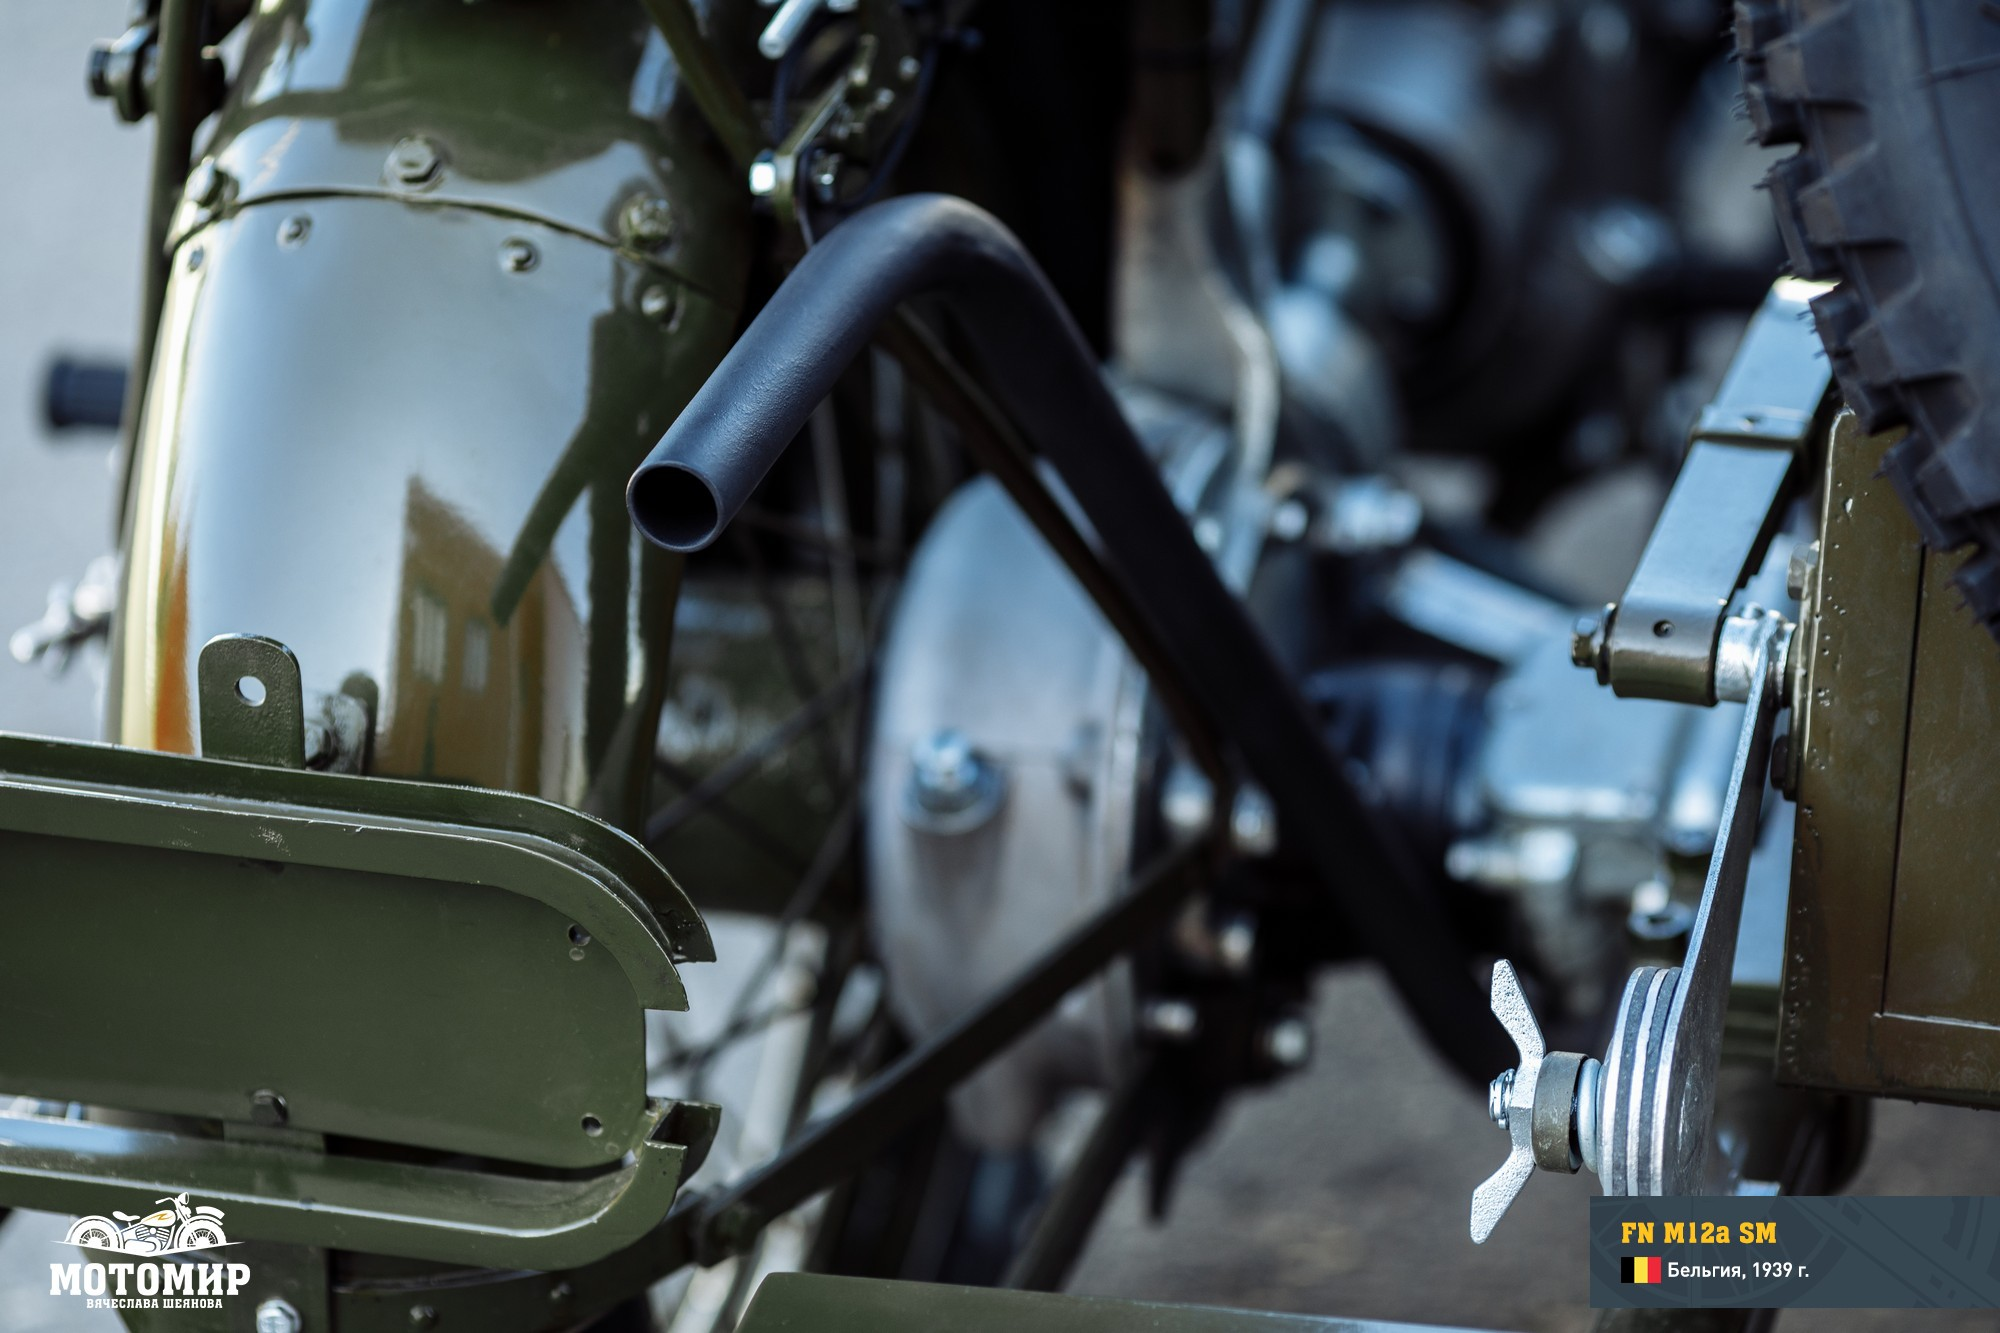 FN M12a SM motorcycle